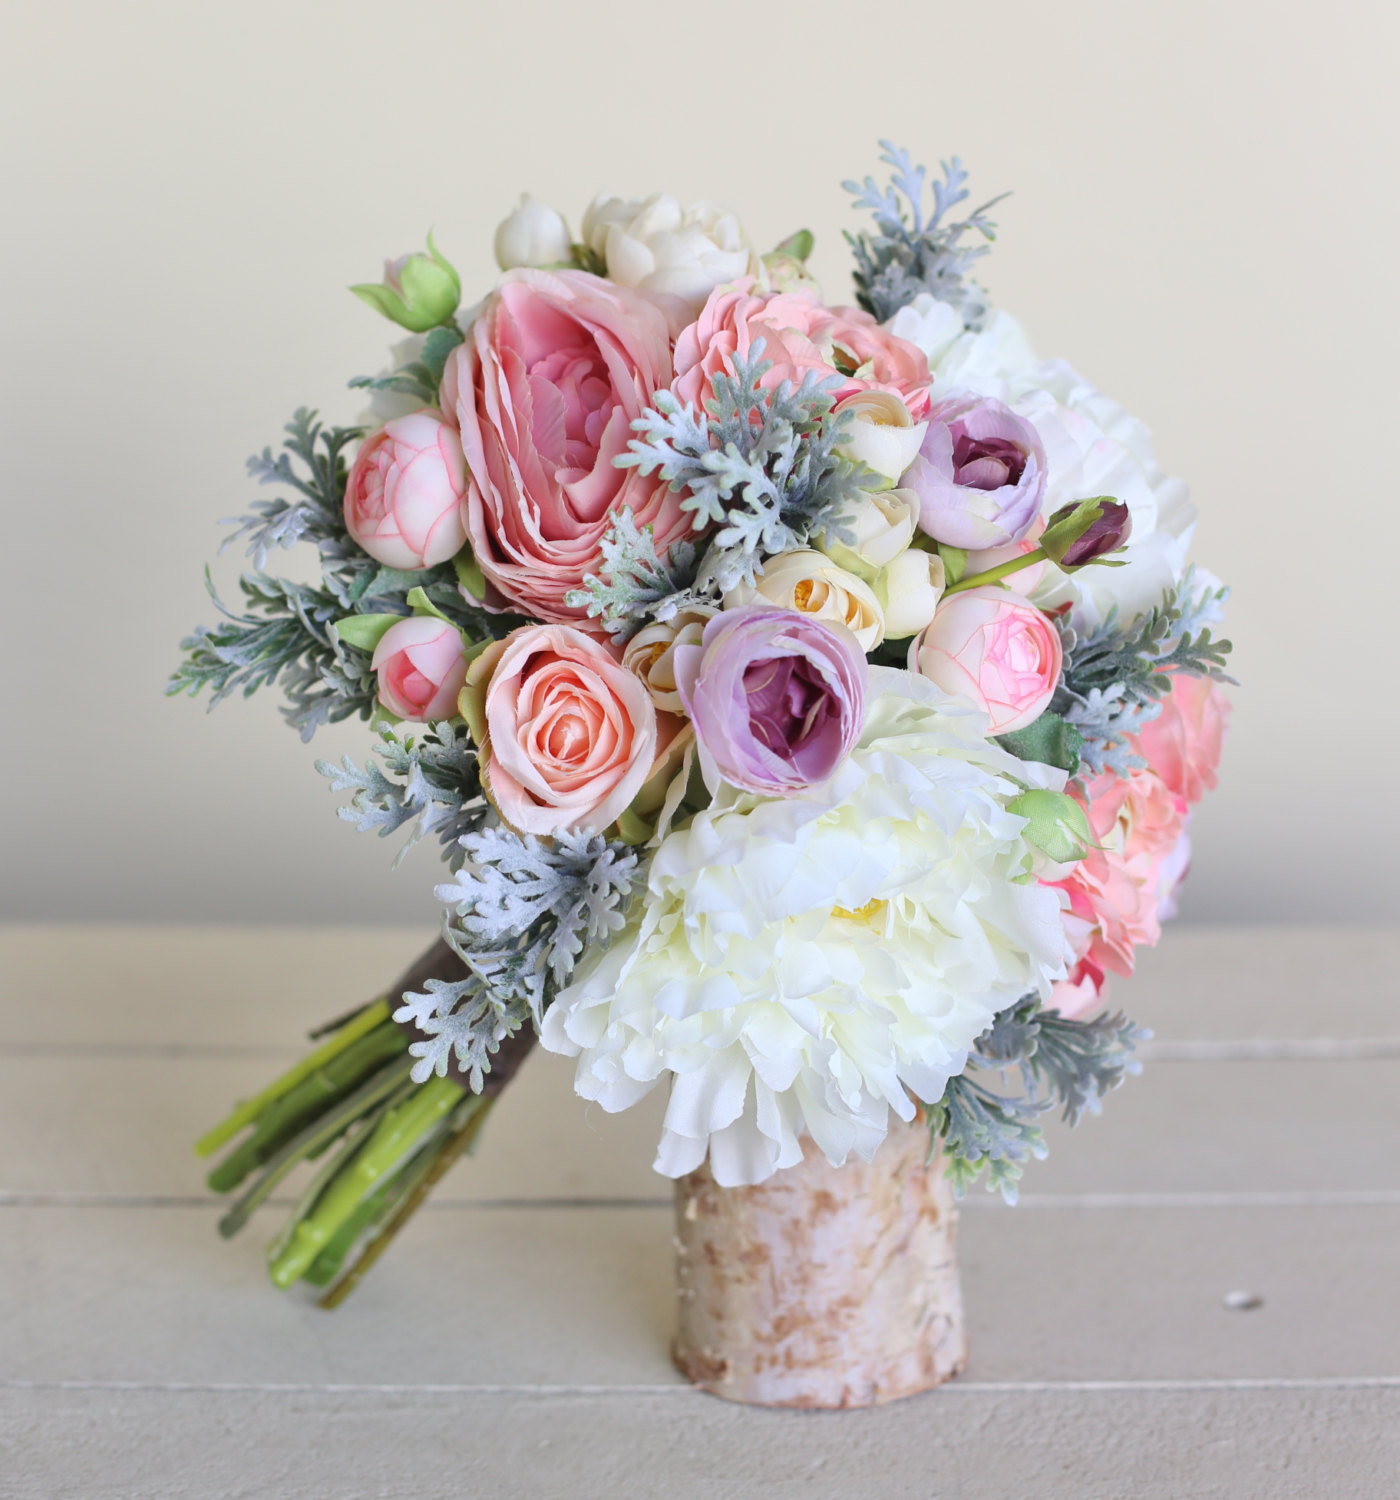 Ideas For Wedding Flowers: Wedding Bridal Bouquet Inspiration